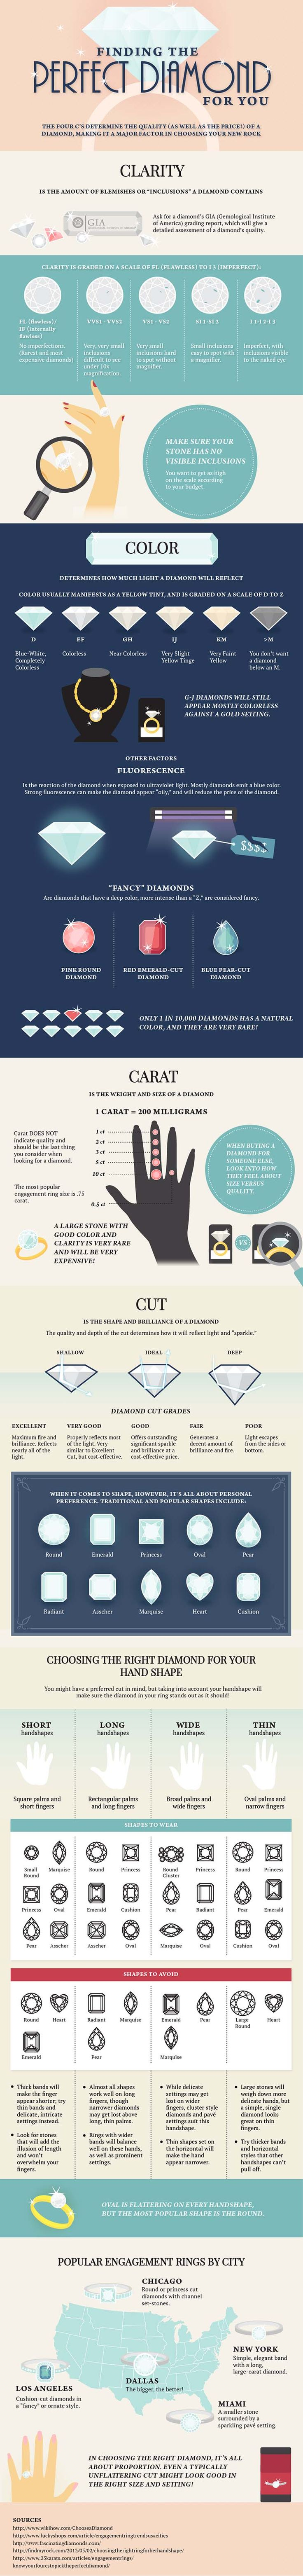 Are you buying the right diamond? Let professionals guide you - Fascinating Diamonds